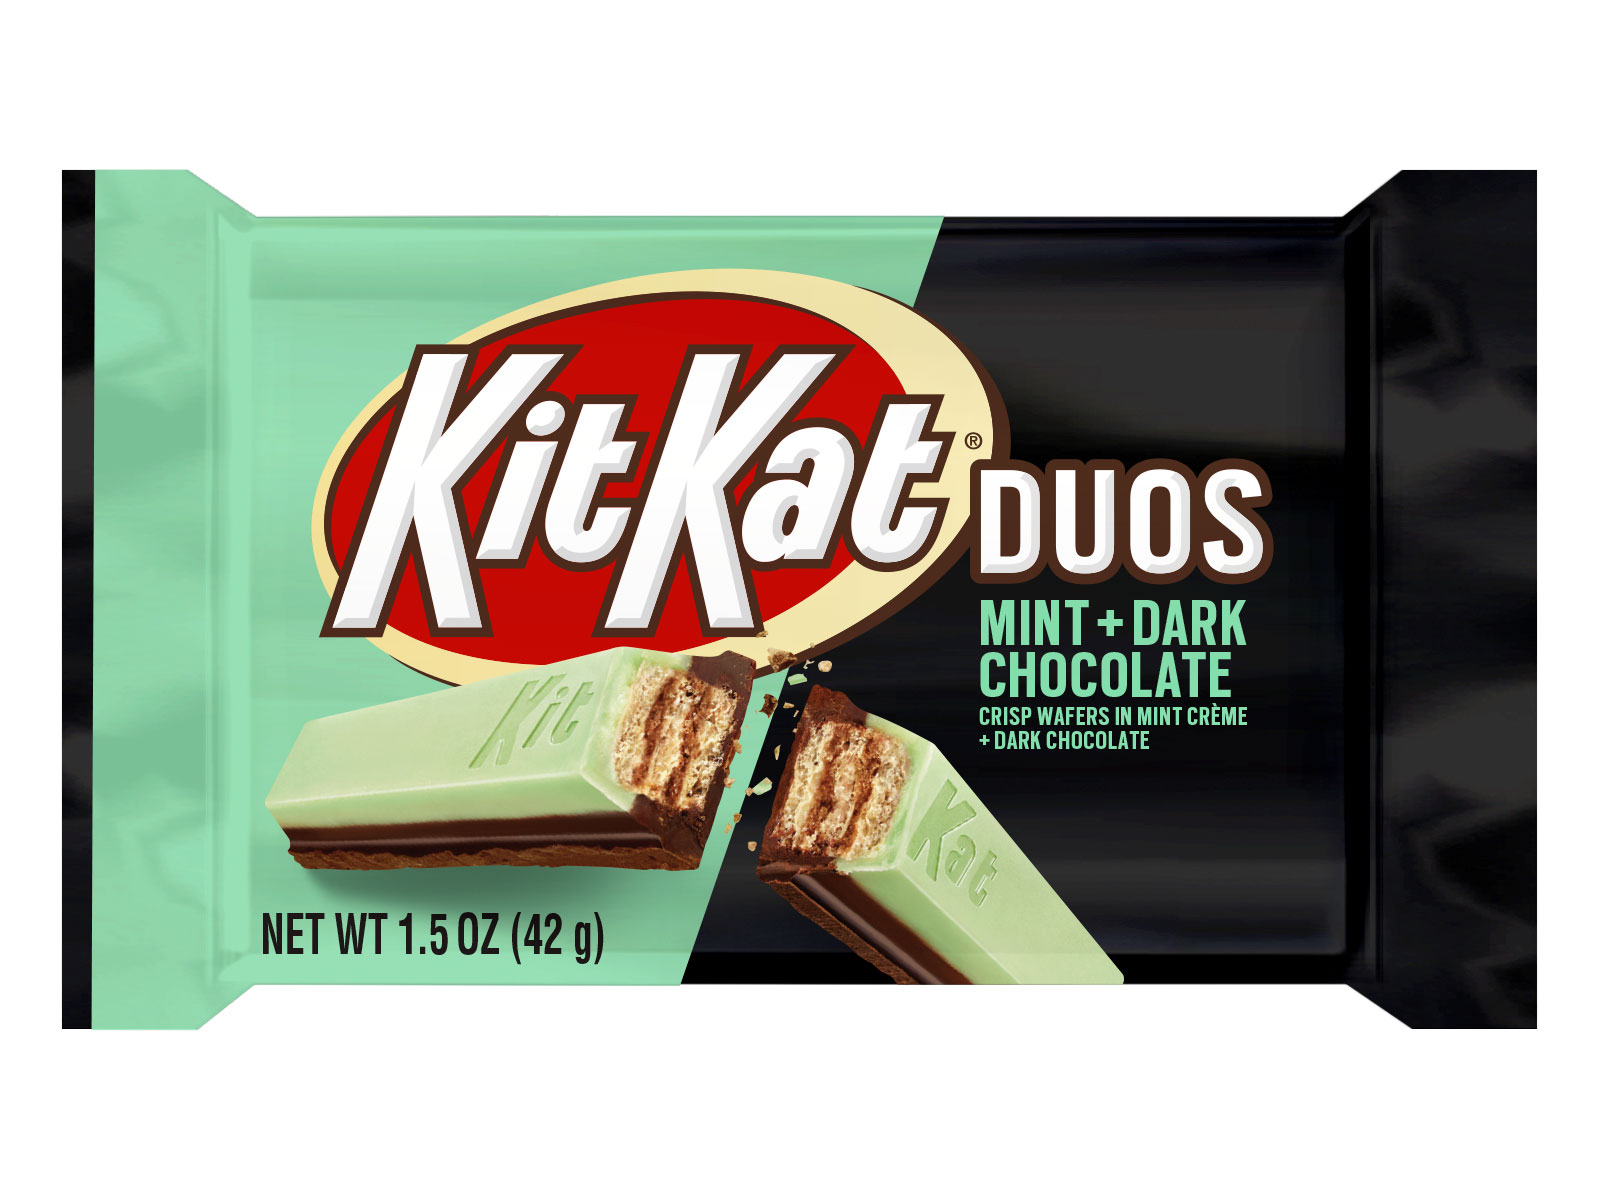 Kit Kat Unveils New Kit Kat Duos Mint + Dark Chocolate Bar